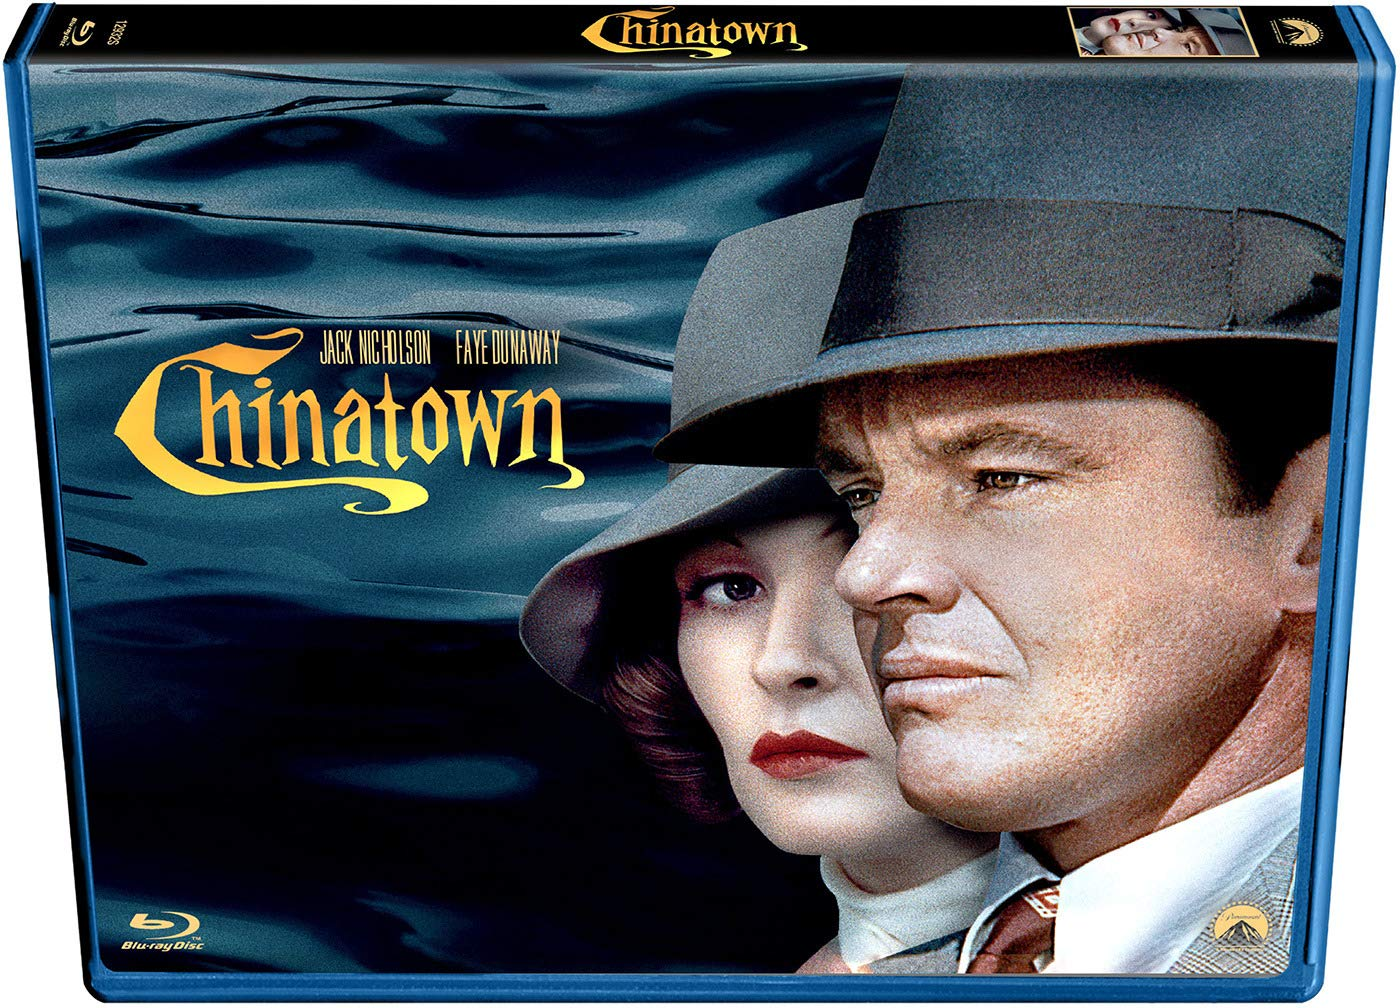 Chinatown Edicion Horizontal Bd Blu Ray Amazon Es Jack Nicholson Faye Dunaway John Huston Perry Lopez Roman Polanski Jack Nicholson Faye Dunaway Paramount Pictures Cine Y Series Tv Find ray nicholson now by using canada411 people finder. amazon es